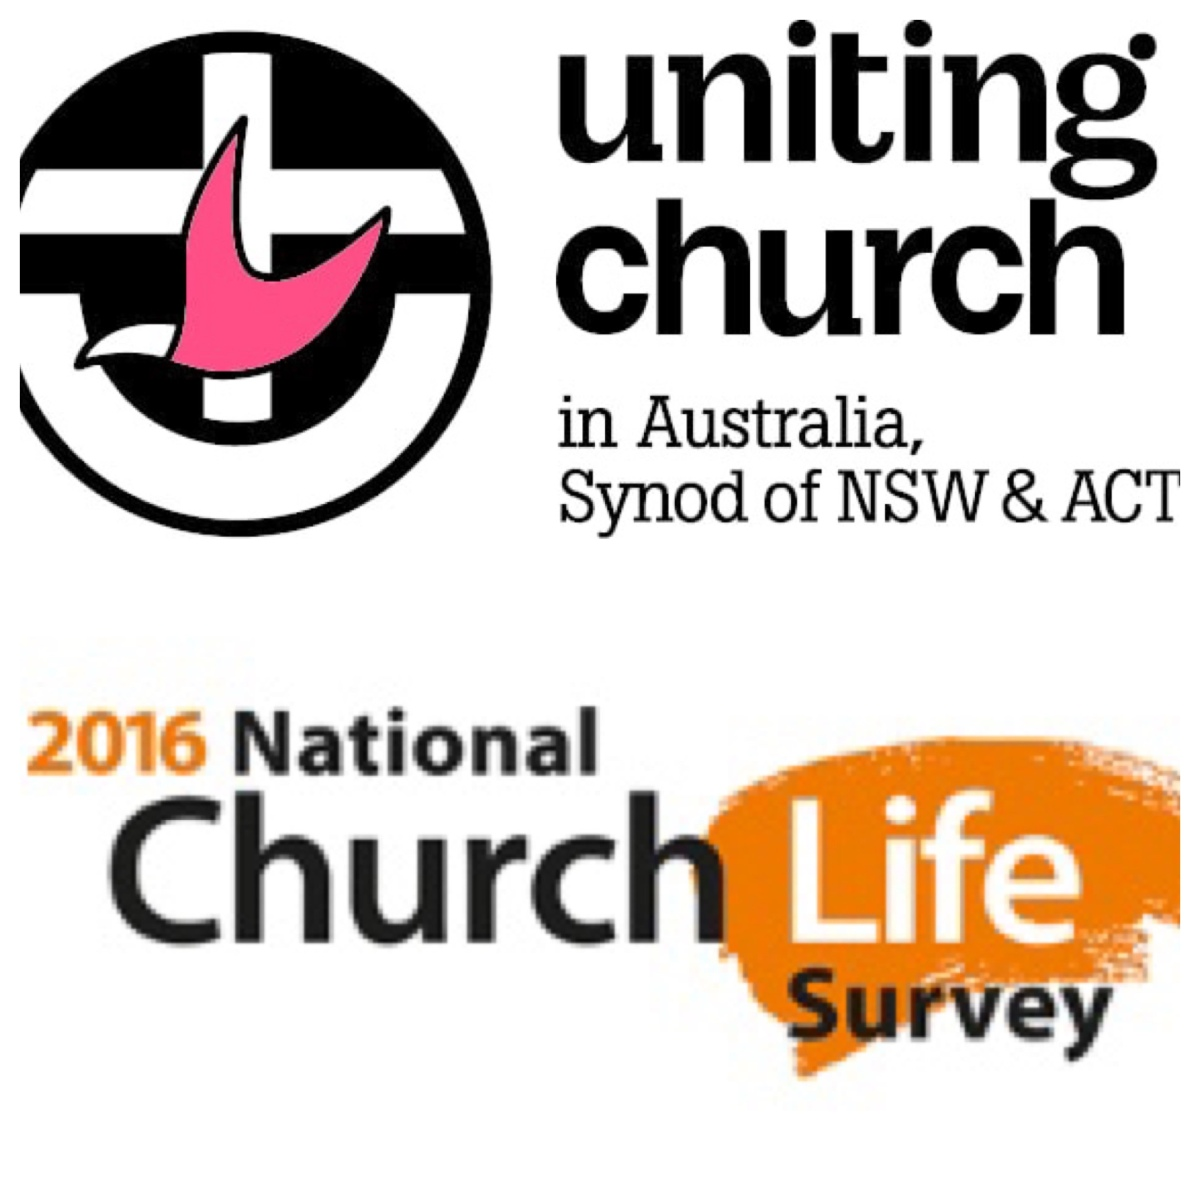 Looking into the mirror: what does the Uniting Church looklike?